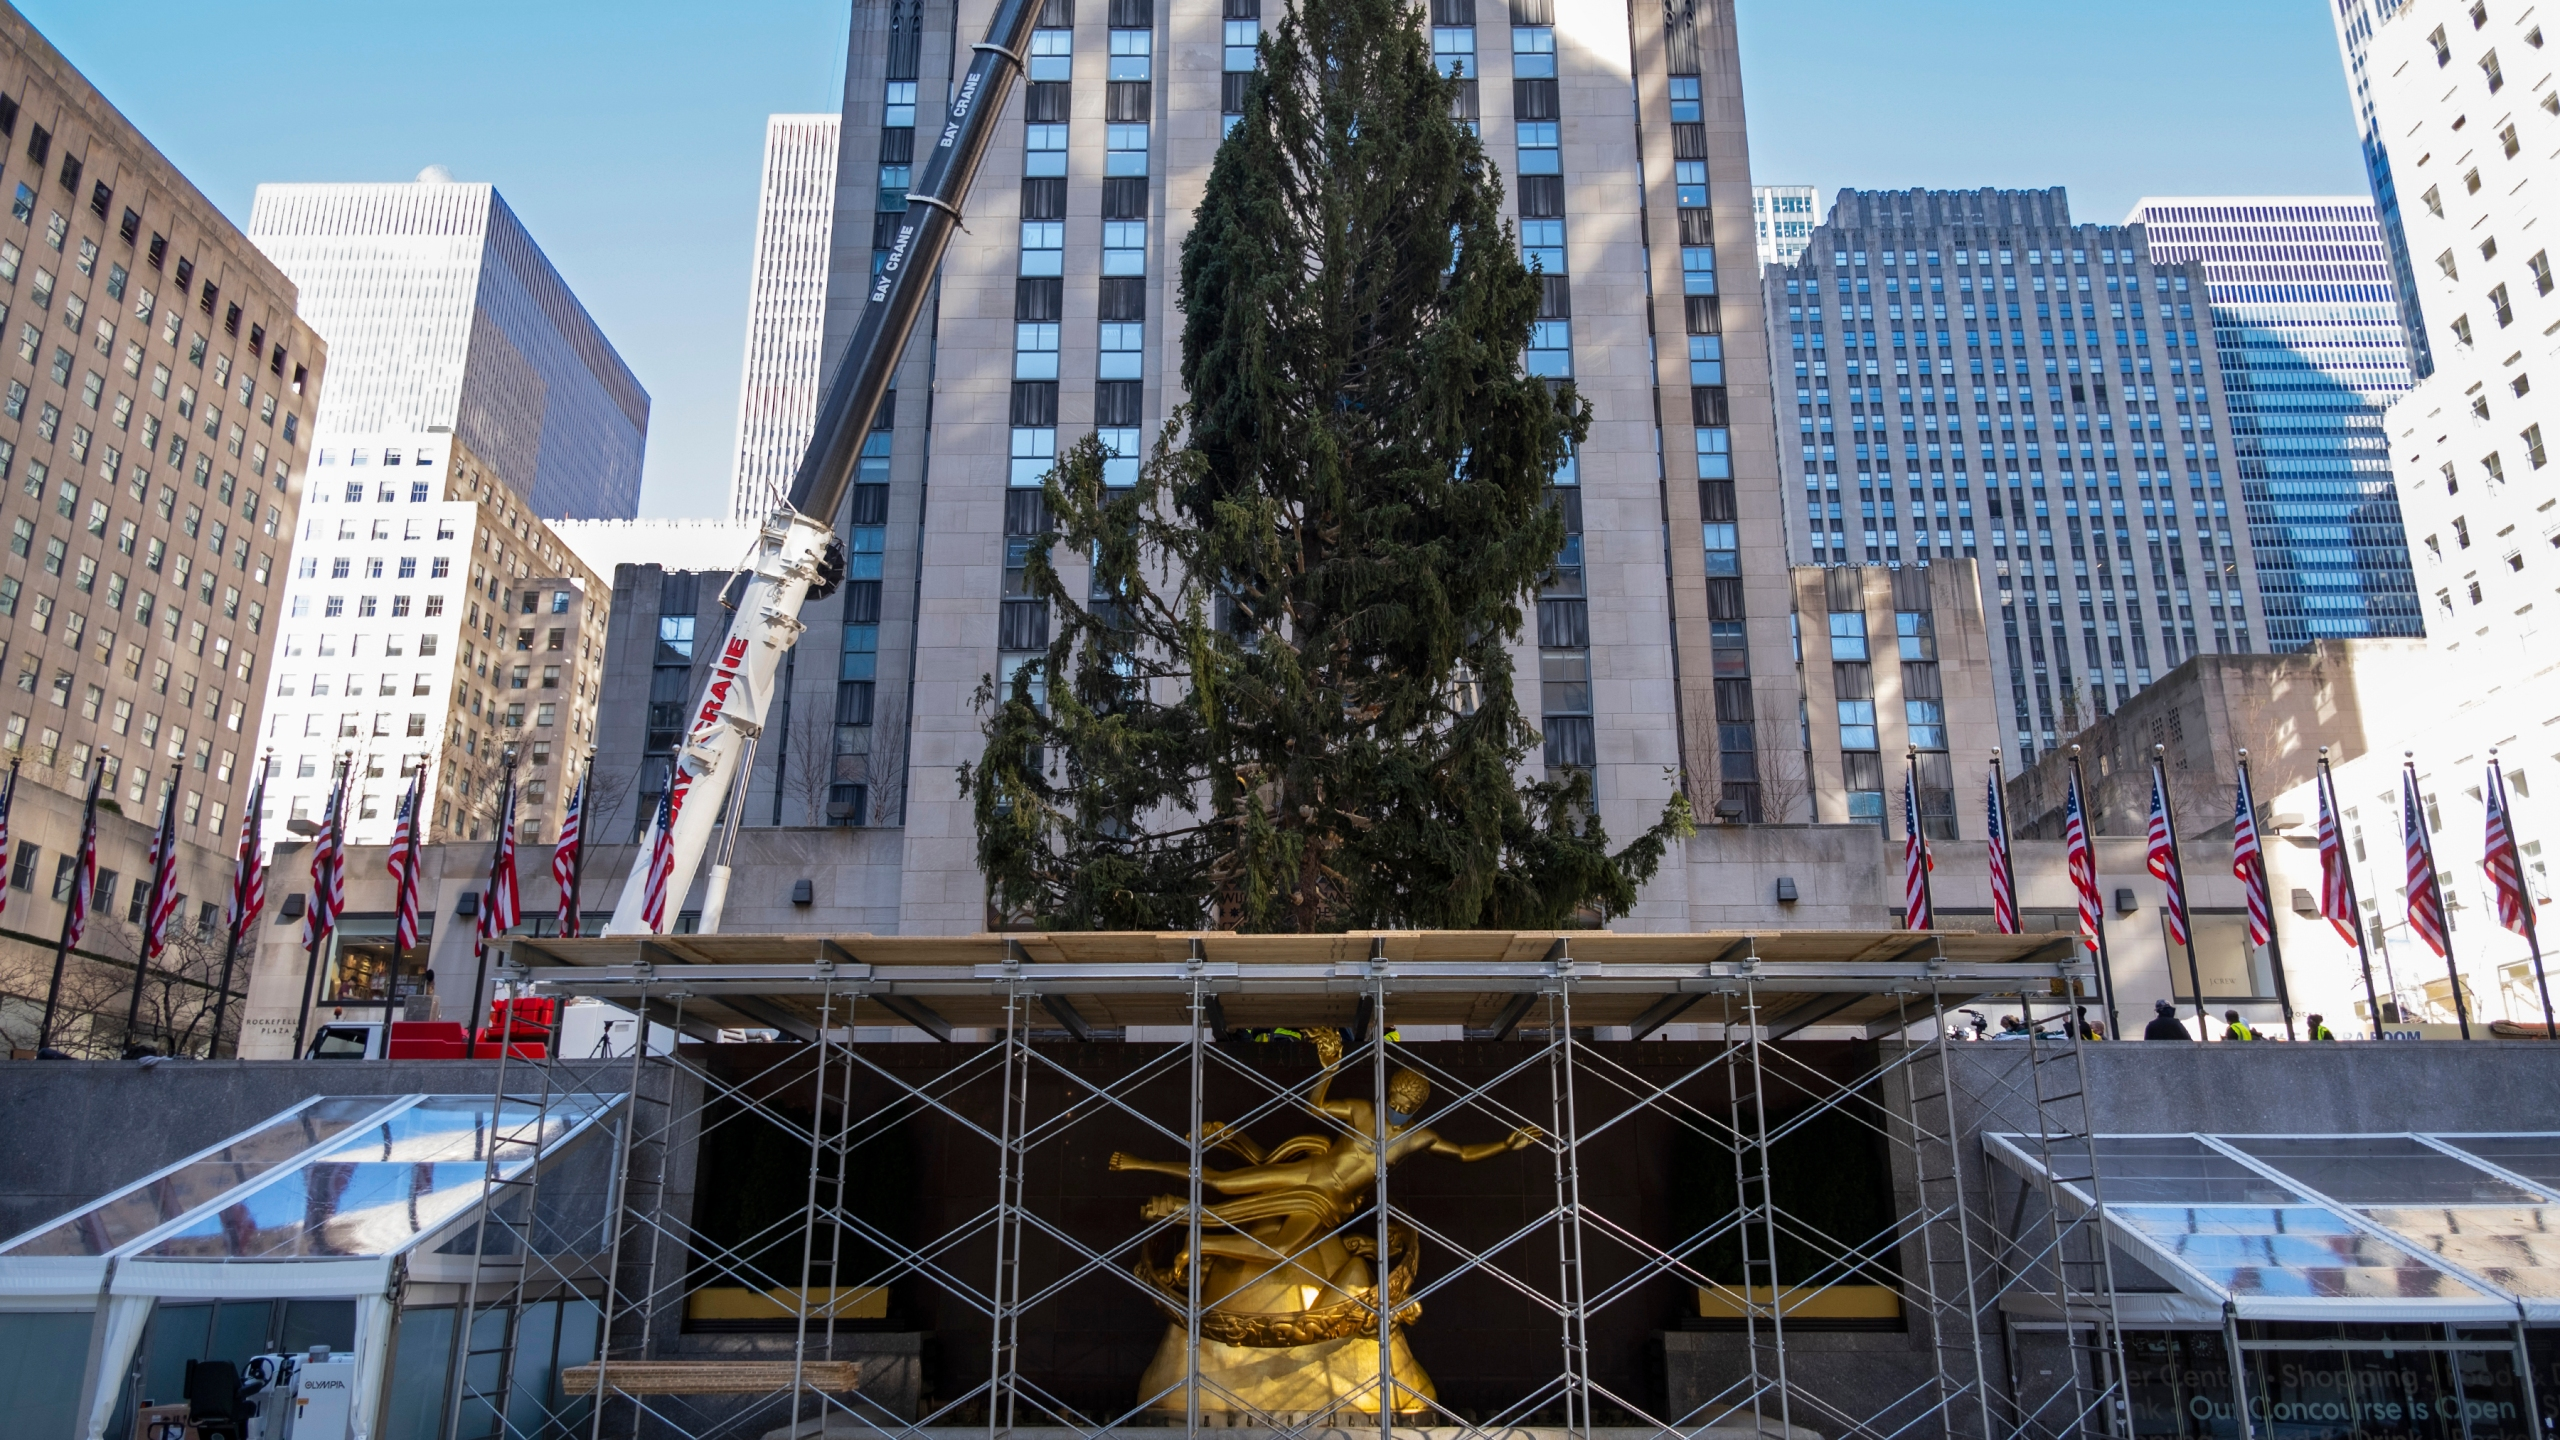 2020 Christmas Tree Lighting Iowa Rockefeller Center Christmas tree goes up; lighting Dec. 2